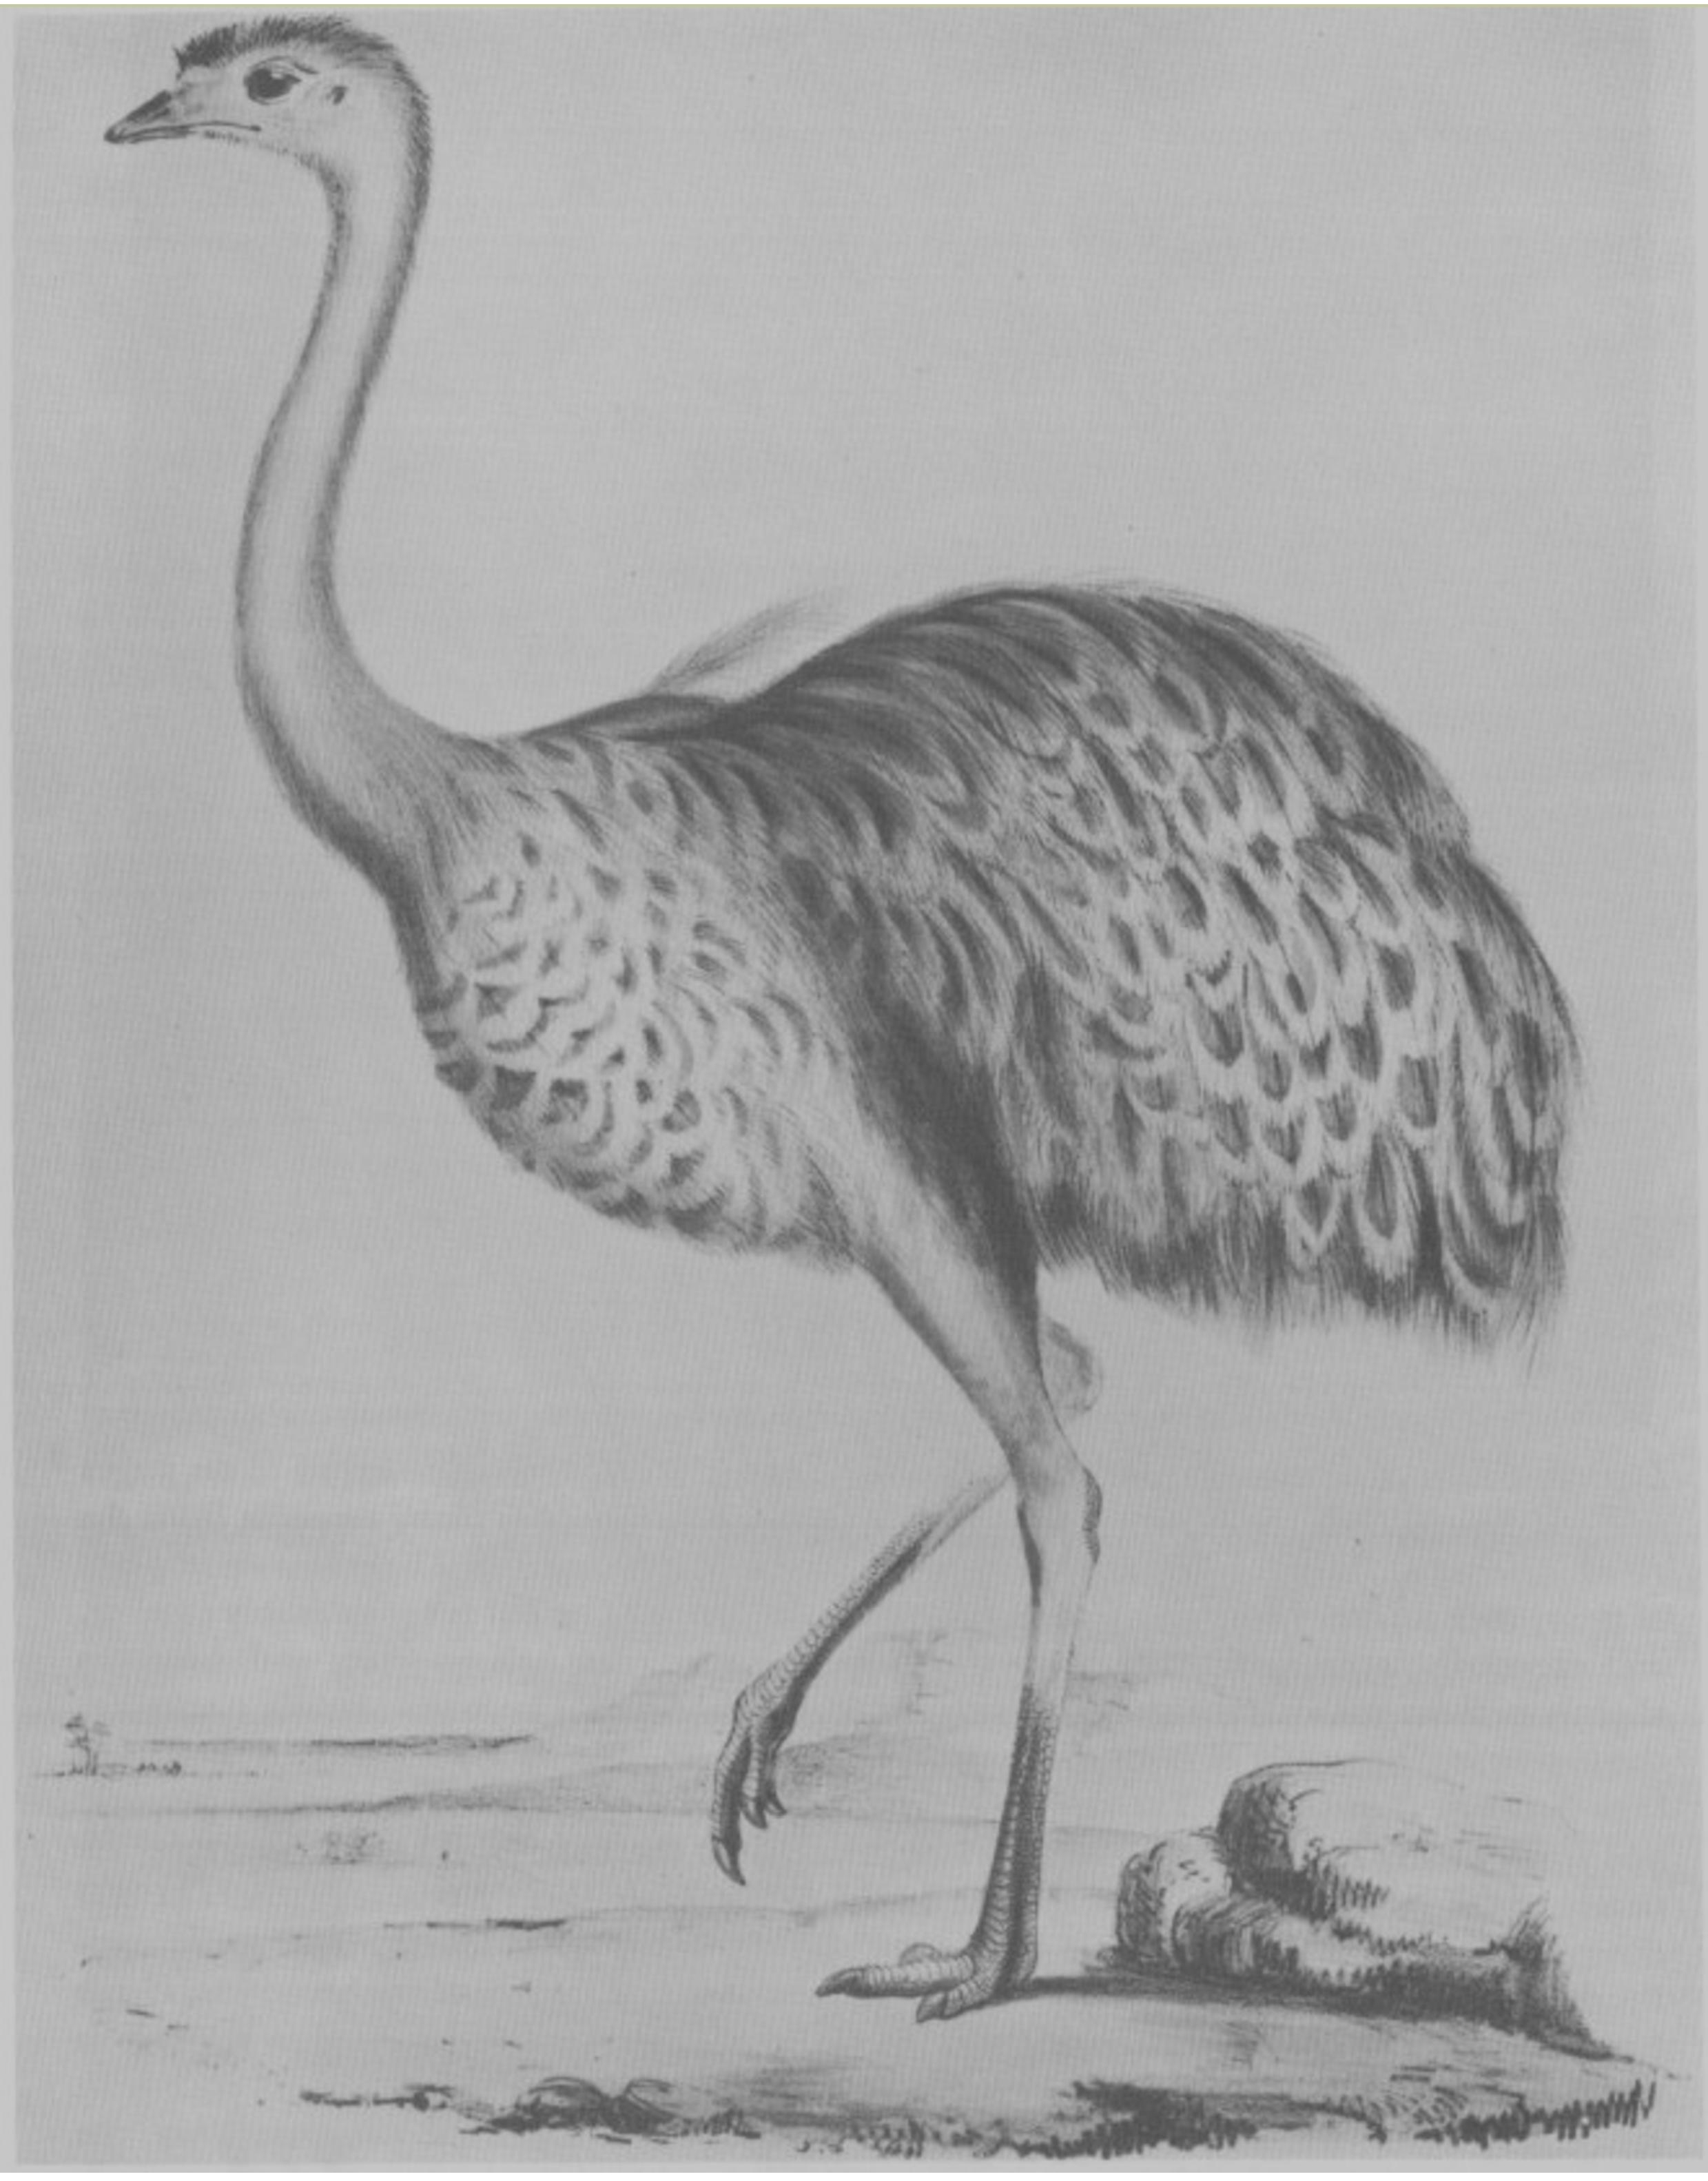 Not quite an ostrich, but near enough: Rhea Darwinii, from John Gould, The Zoology of the Voyage of the Beagle, Part III: Birds. London 1838-41.